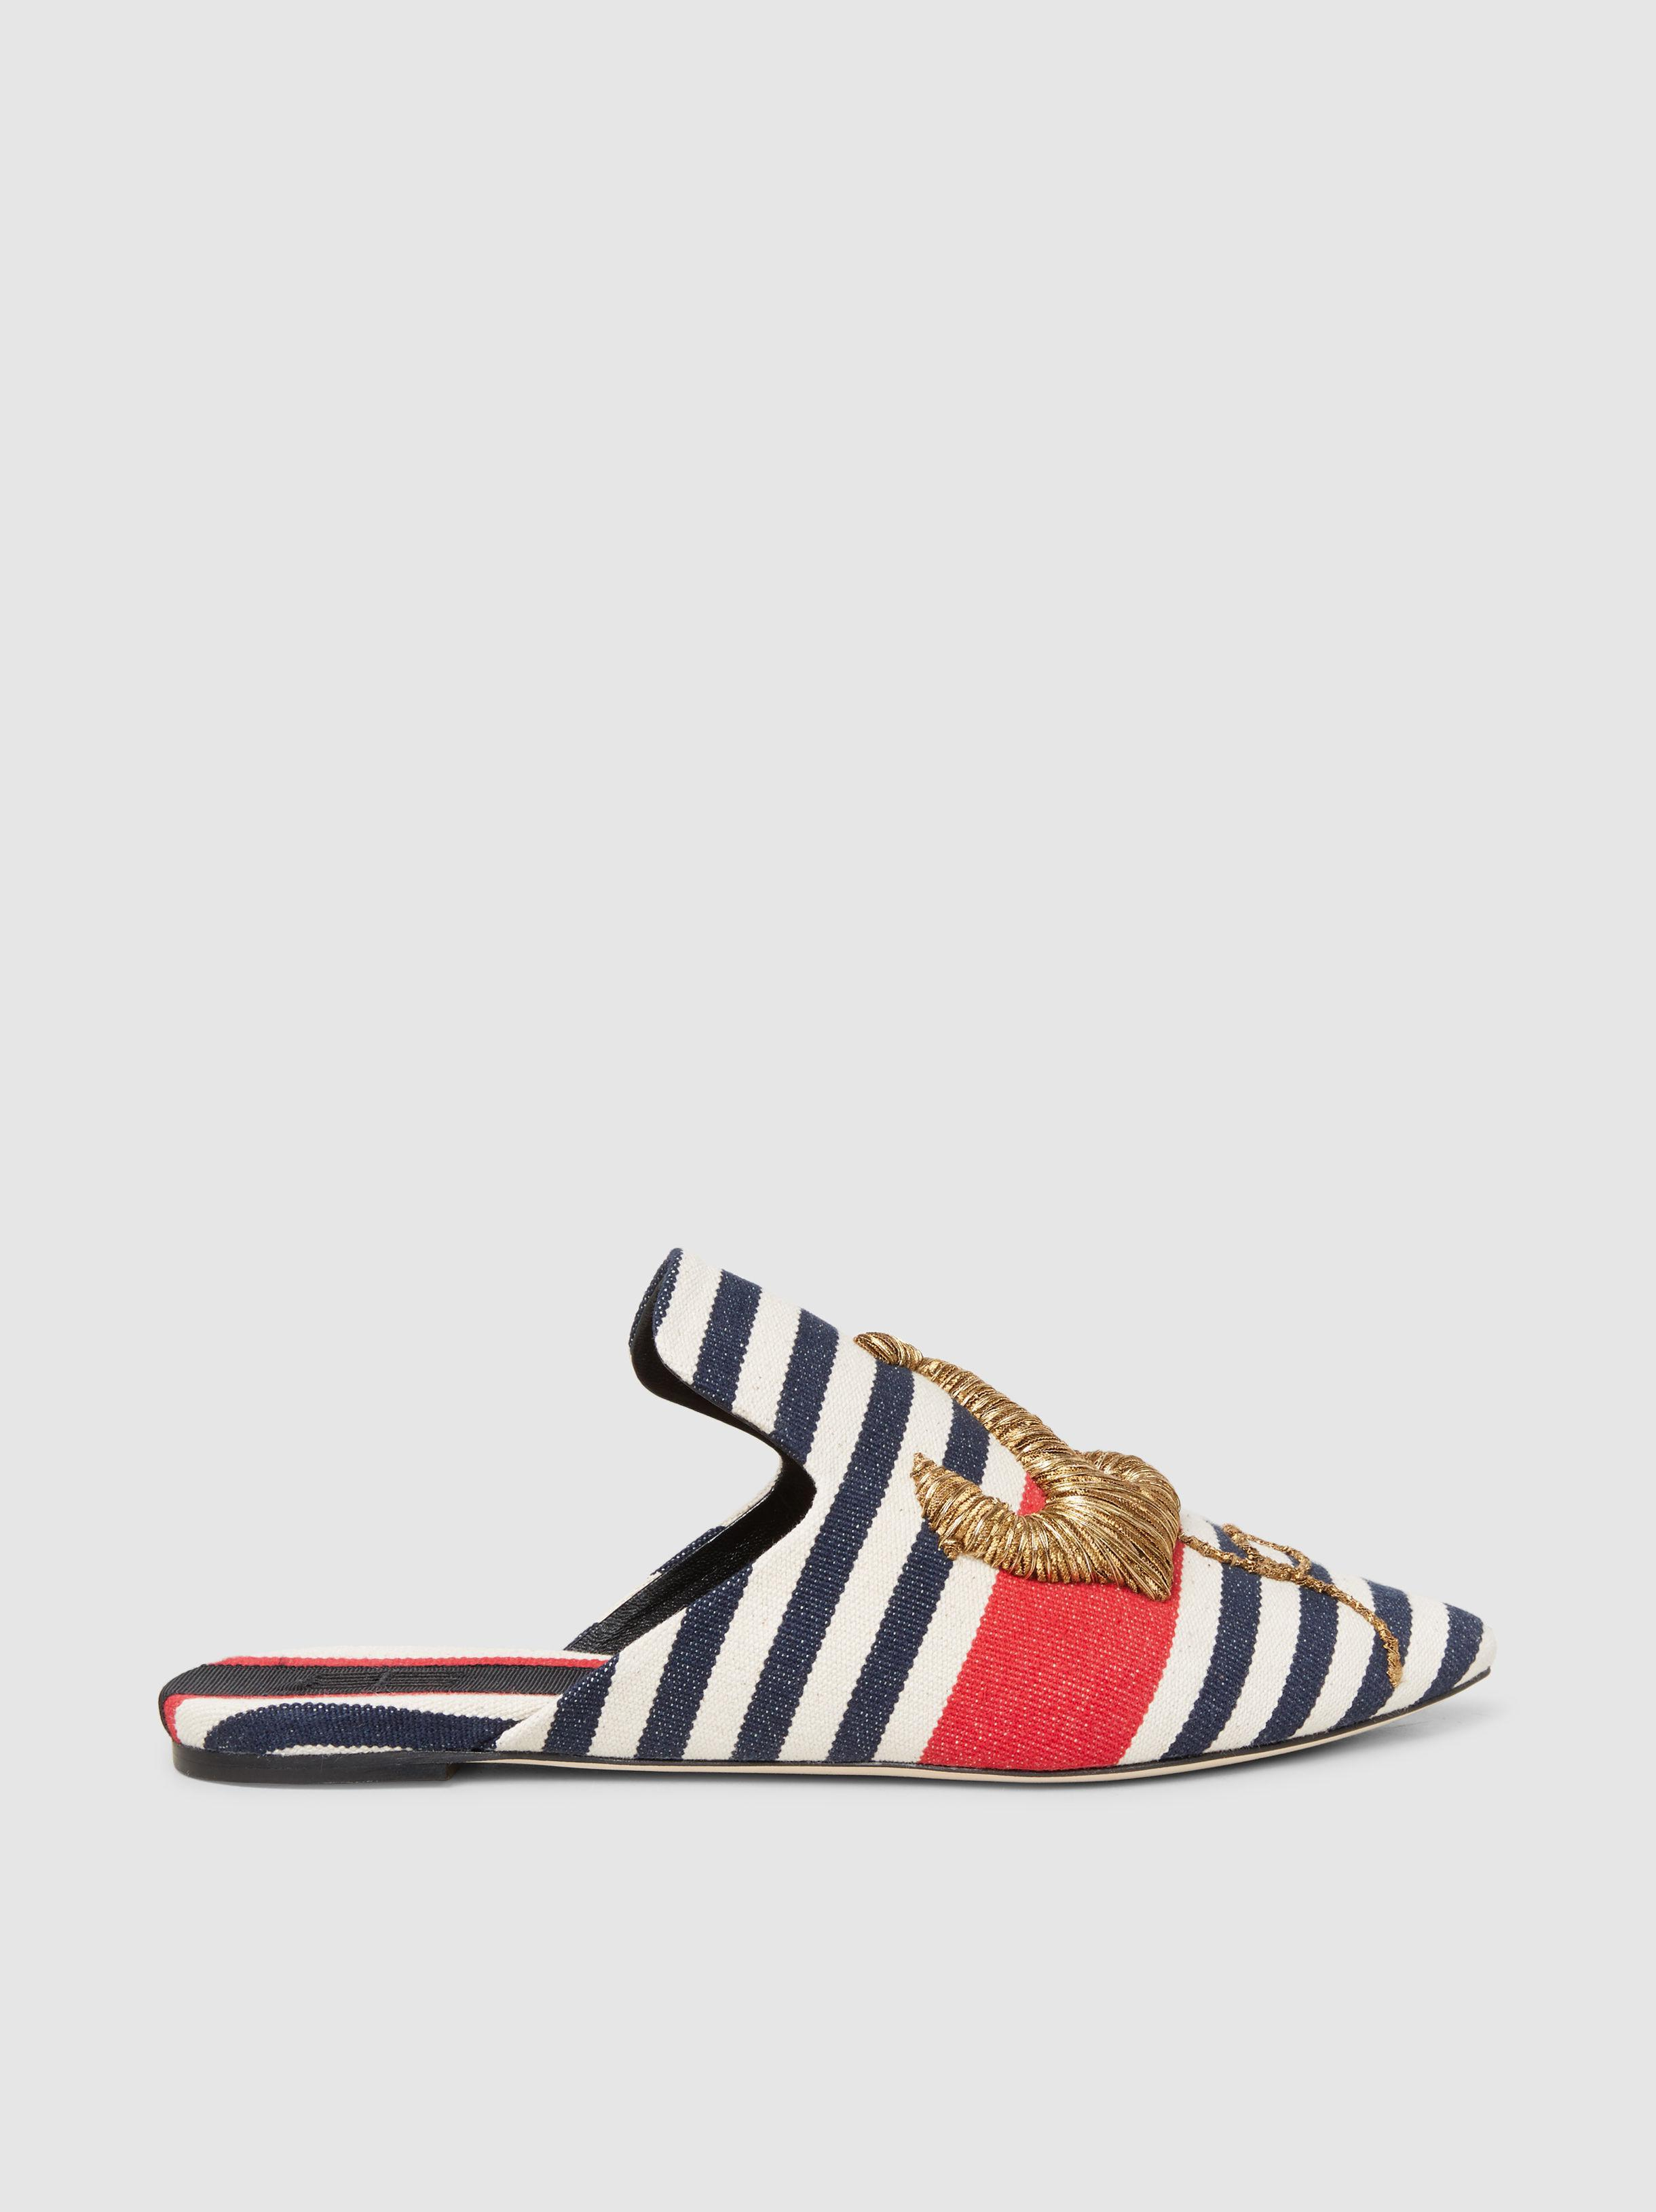 Sanayi 313 Talitha Striped Slipper 6yzPcCNhbN